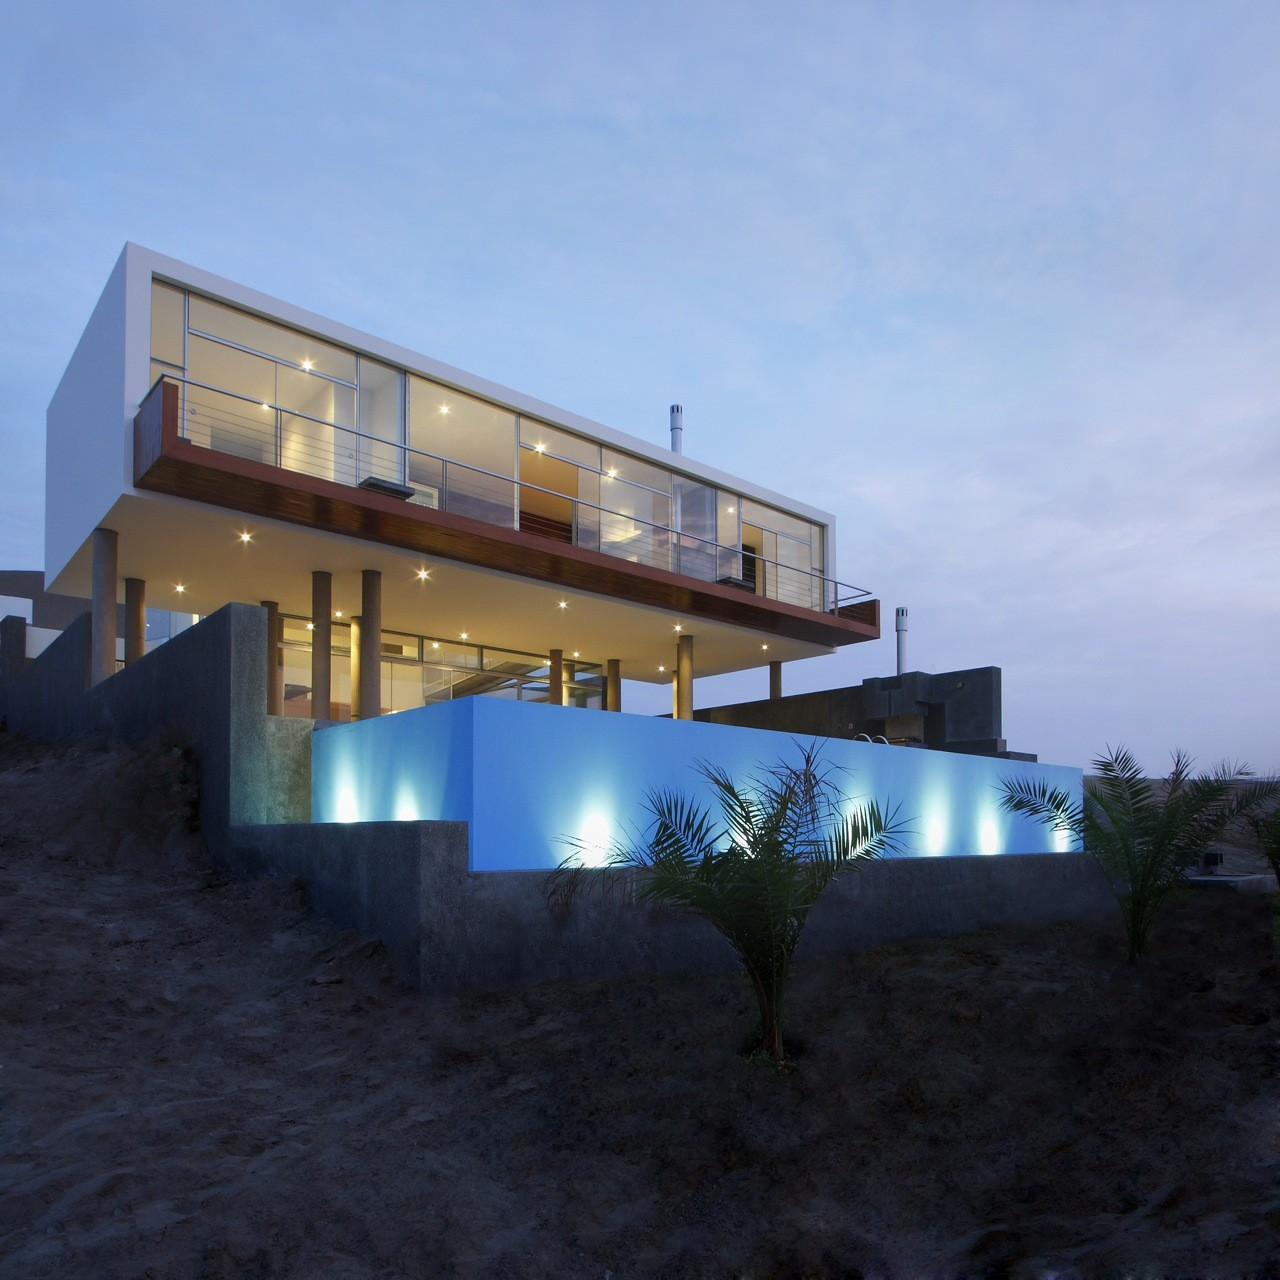 Beach House Q / Longhi Architects, © Juan Solano / CHOlon Photography